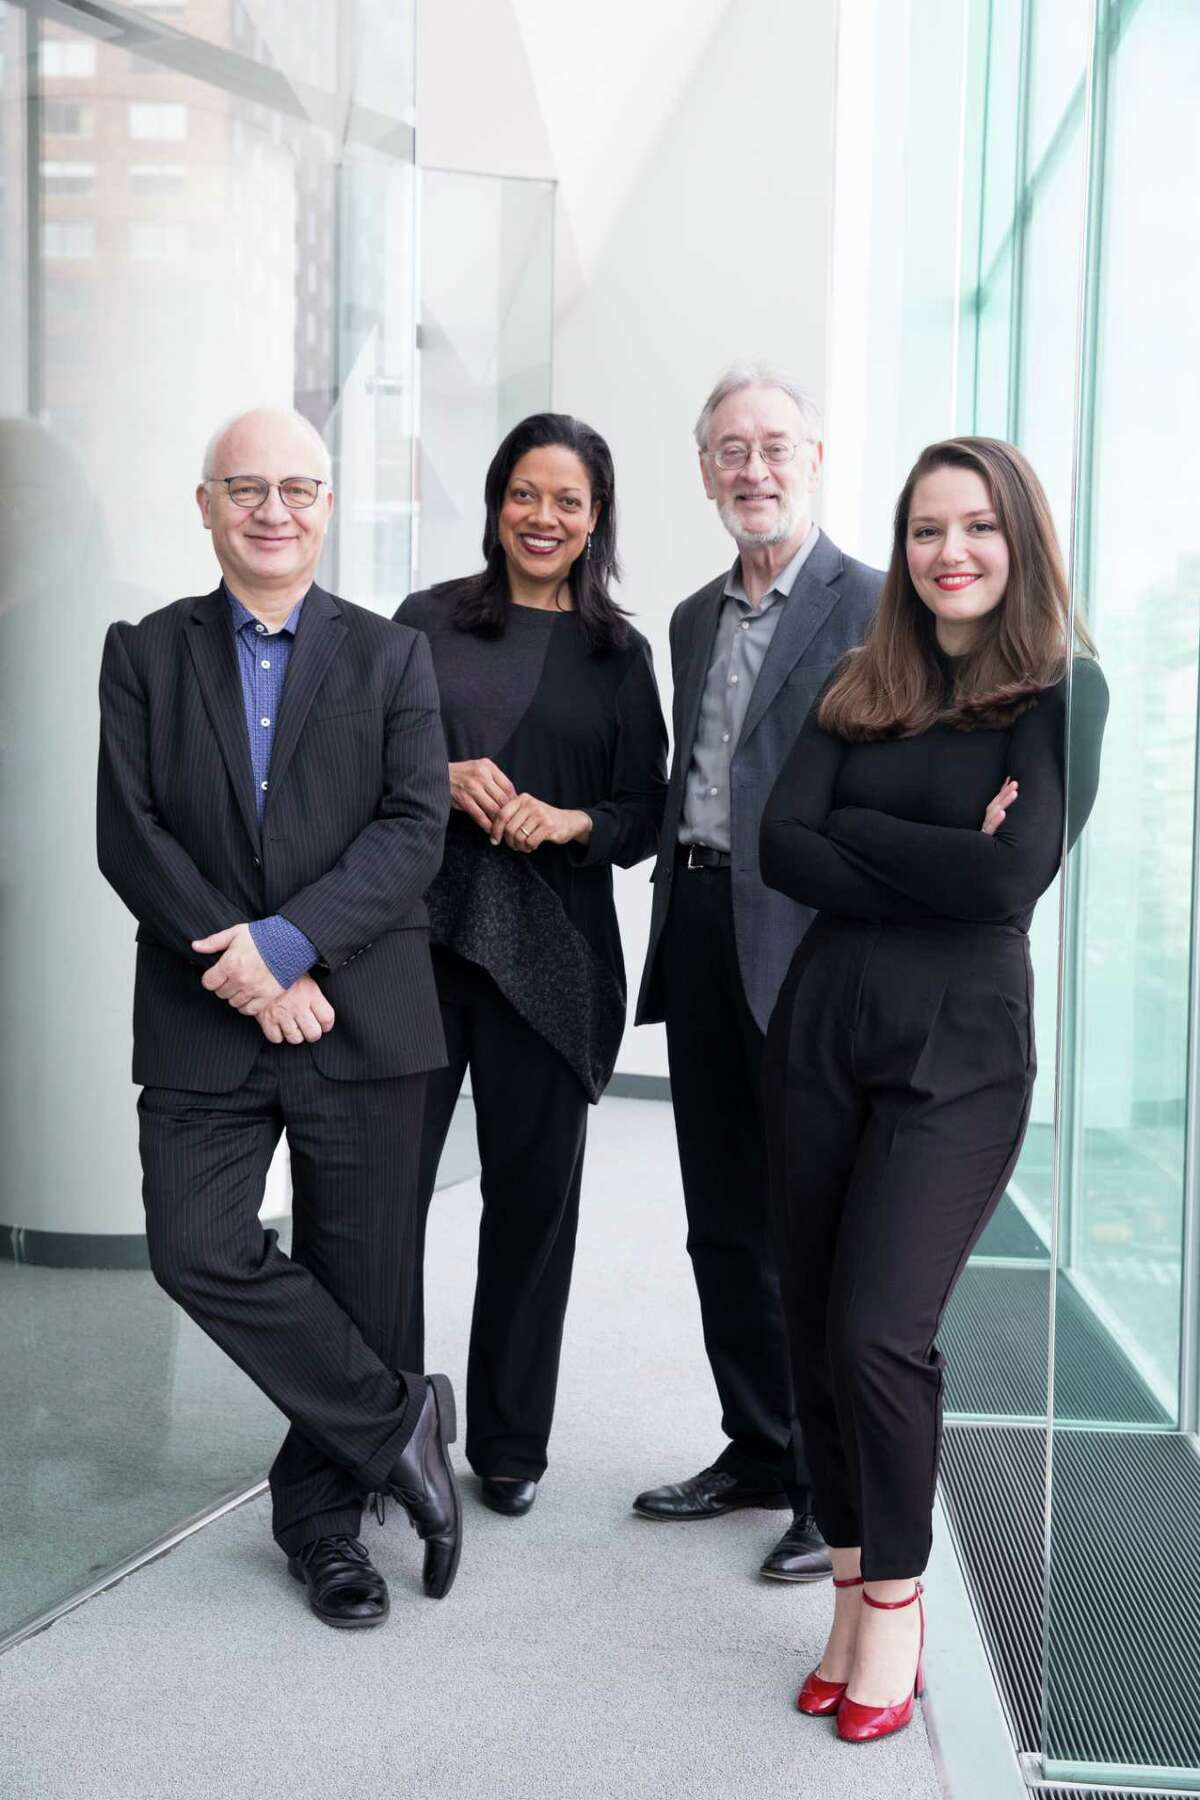 Members Juilliard String Quartet: Astrid Schween, Ronald Copes, Roger Tapping, Areta Zhulla on Monday, February 12, 2018.